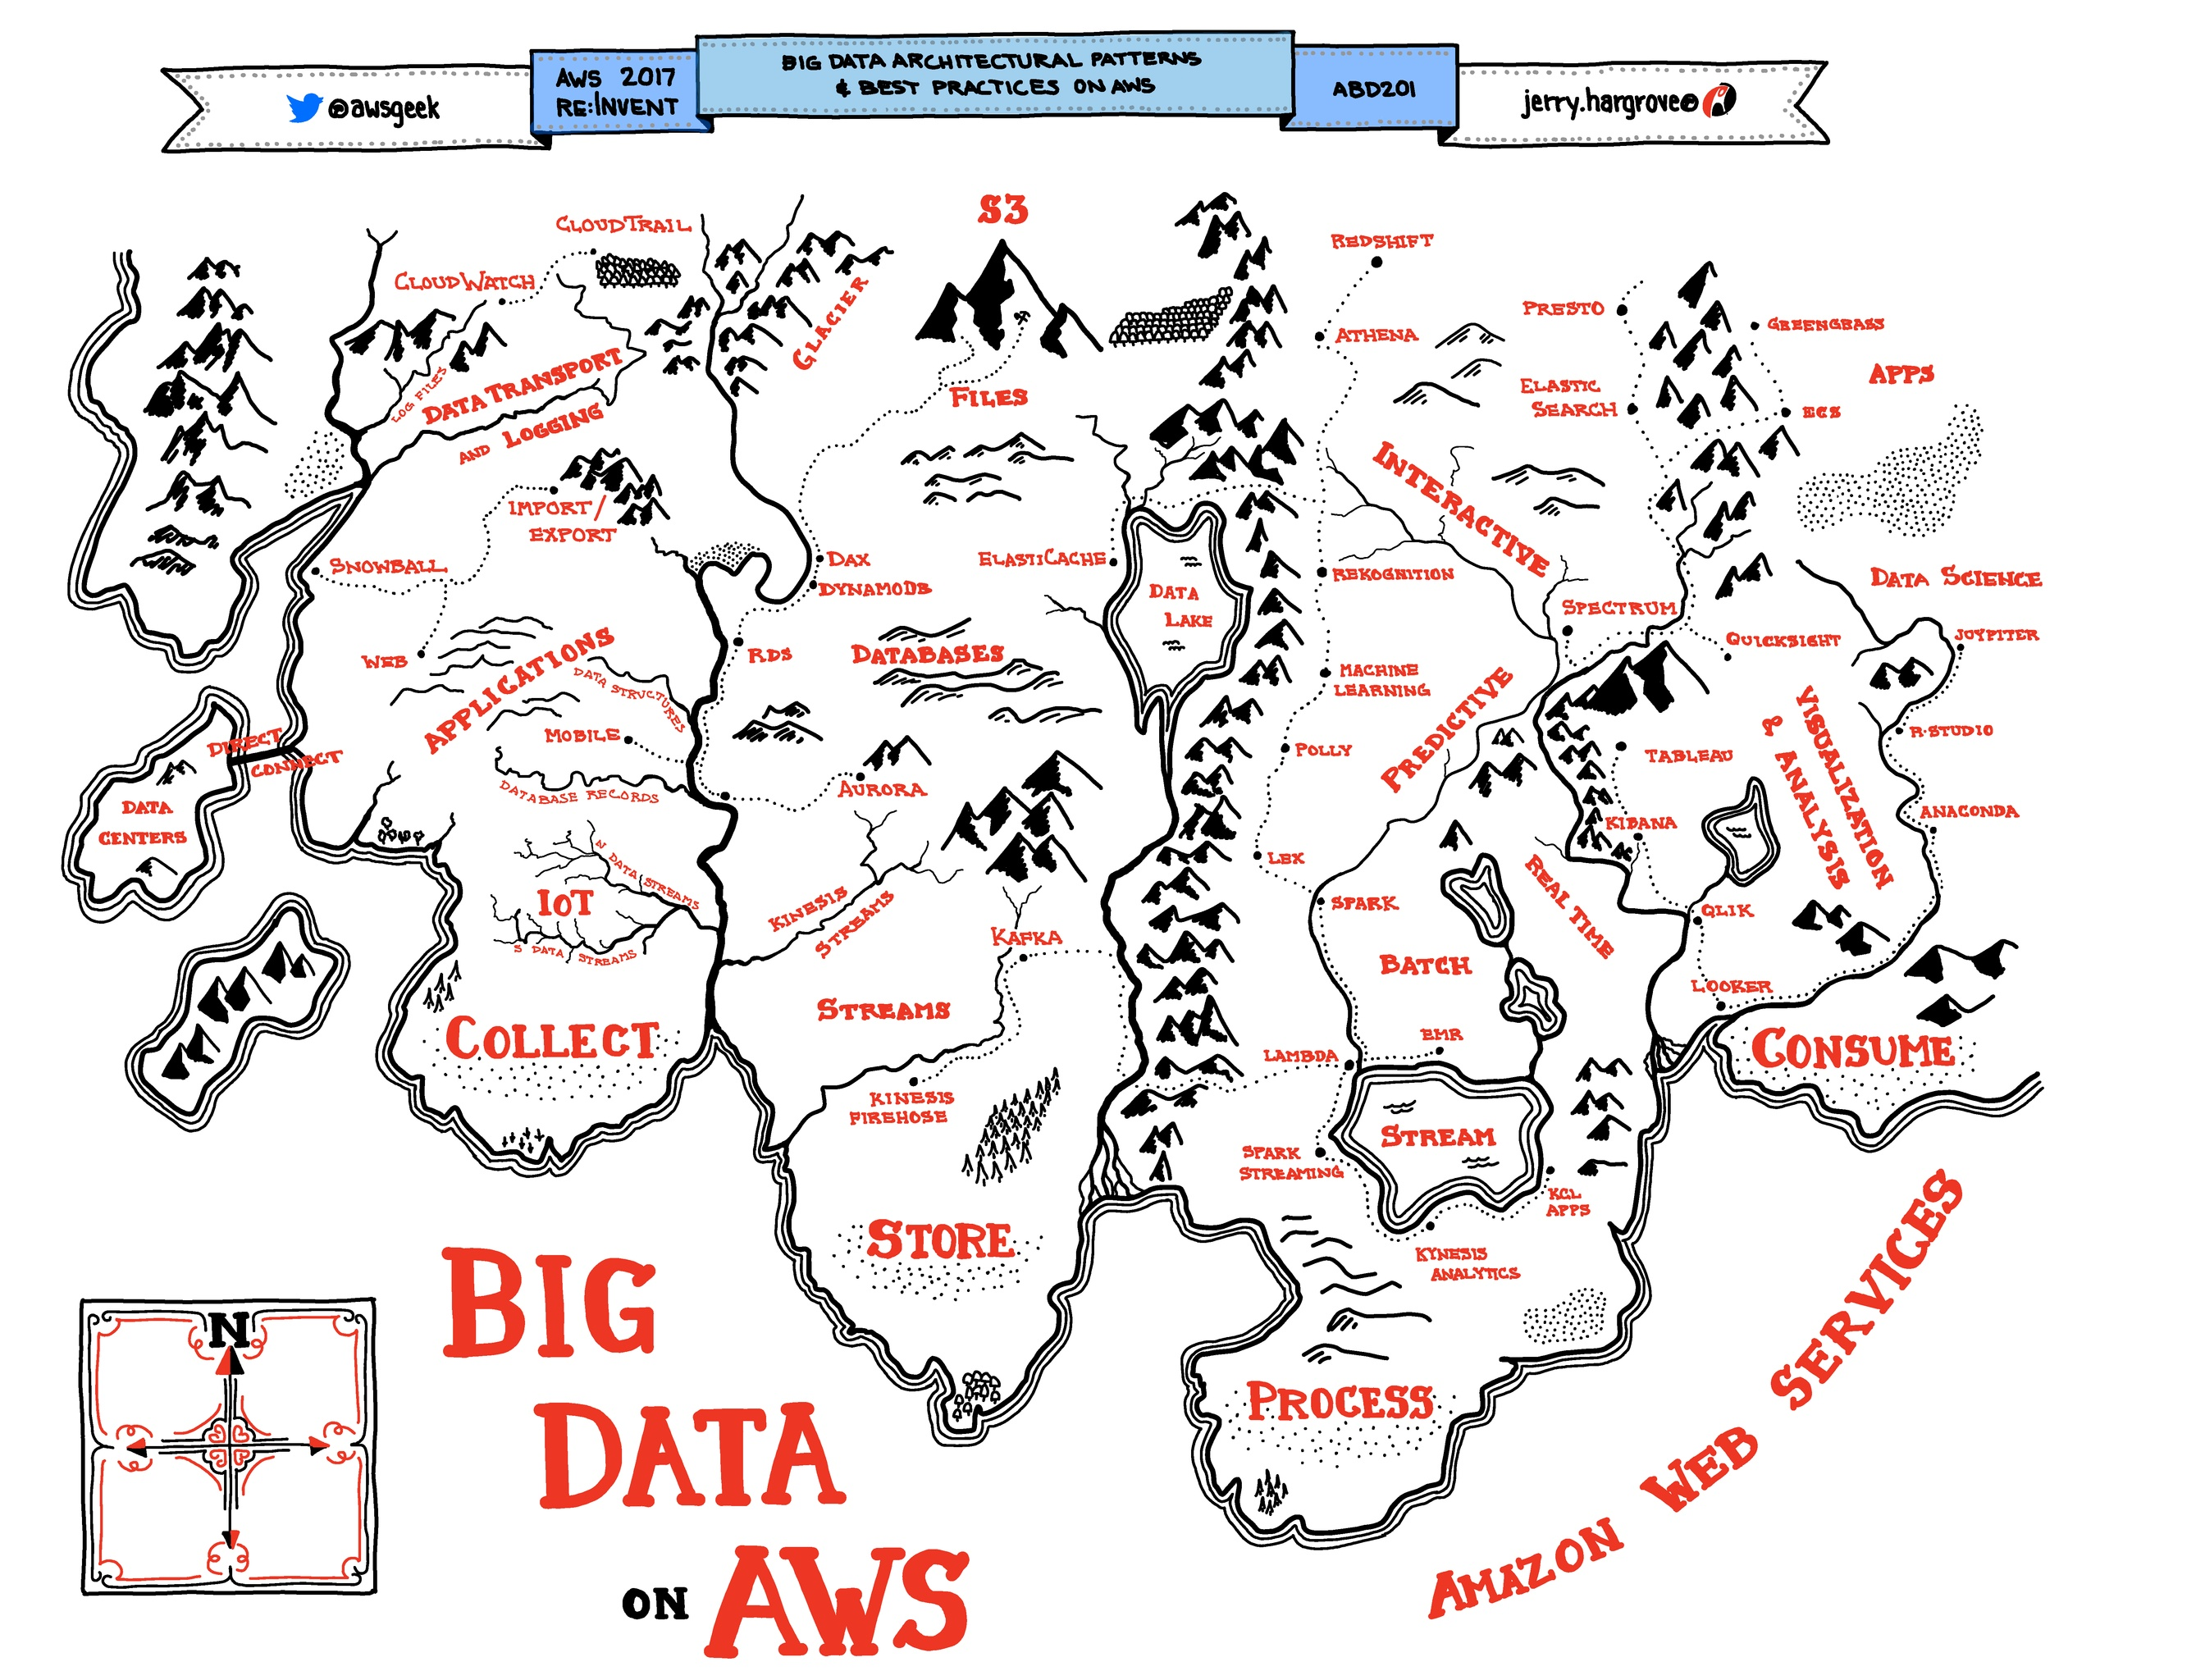 Big-Data-Architectural-Patterns-Best-Practices-on-AWS.jpg